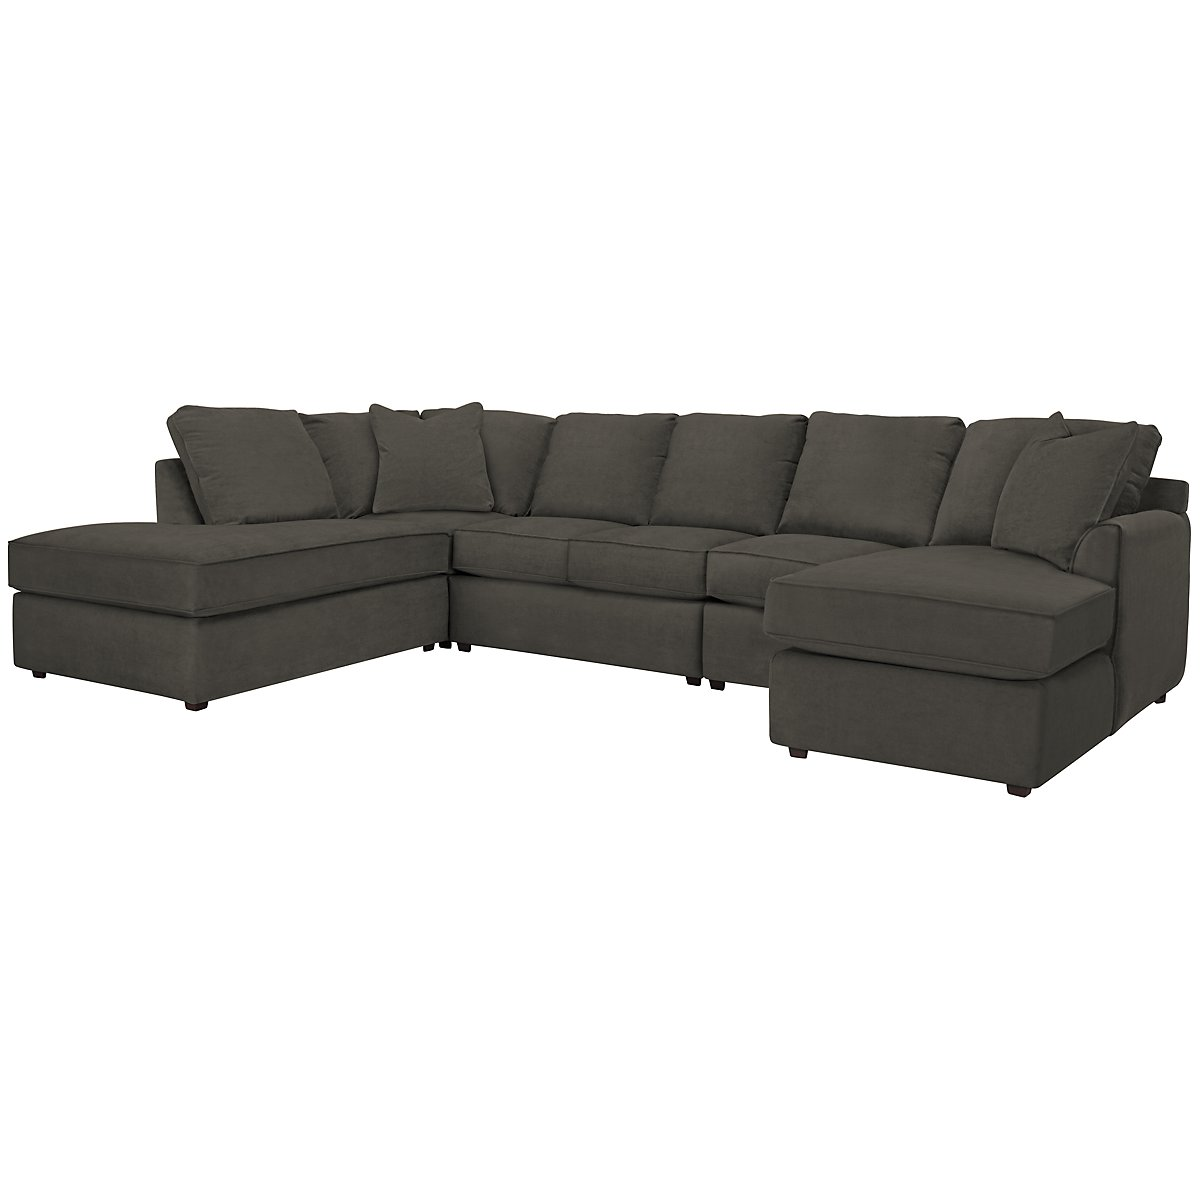 Express3 Dark Gray Microfiber Large Left Bumper Sectional